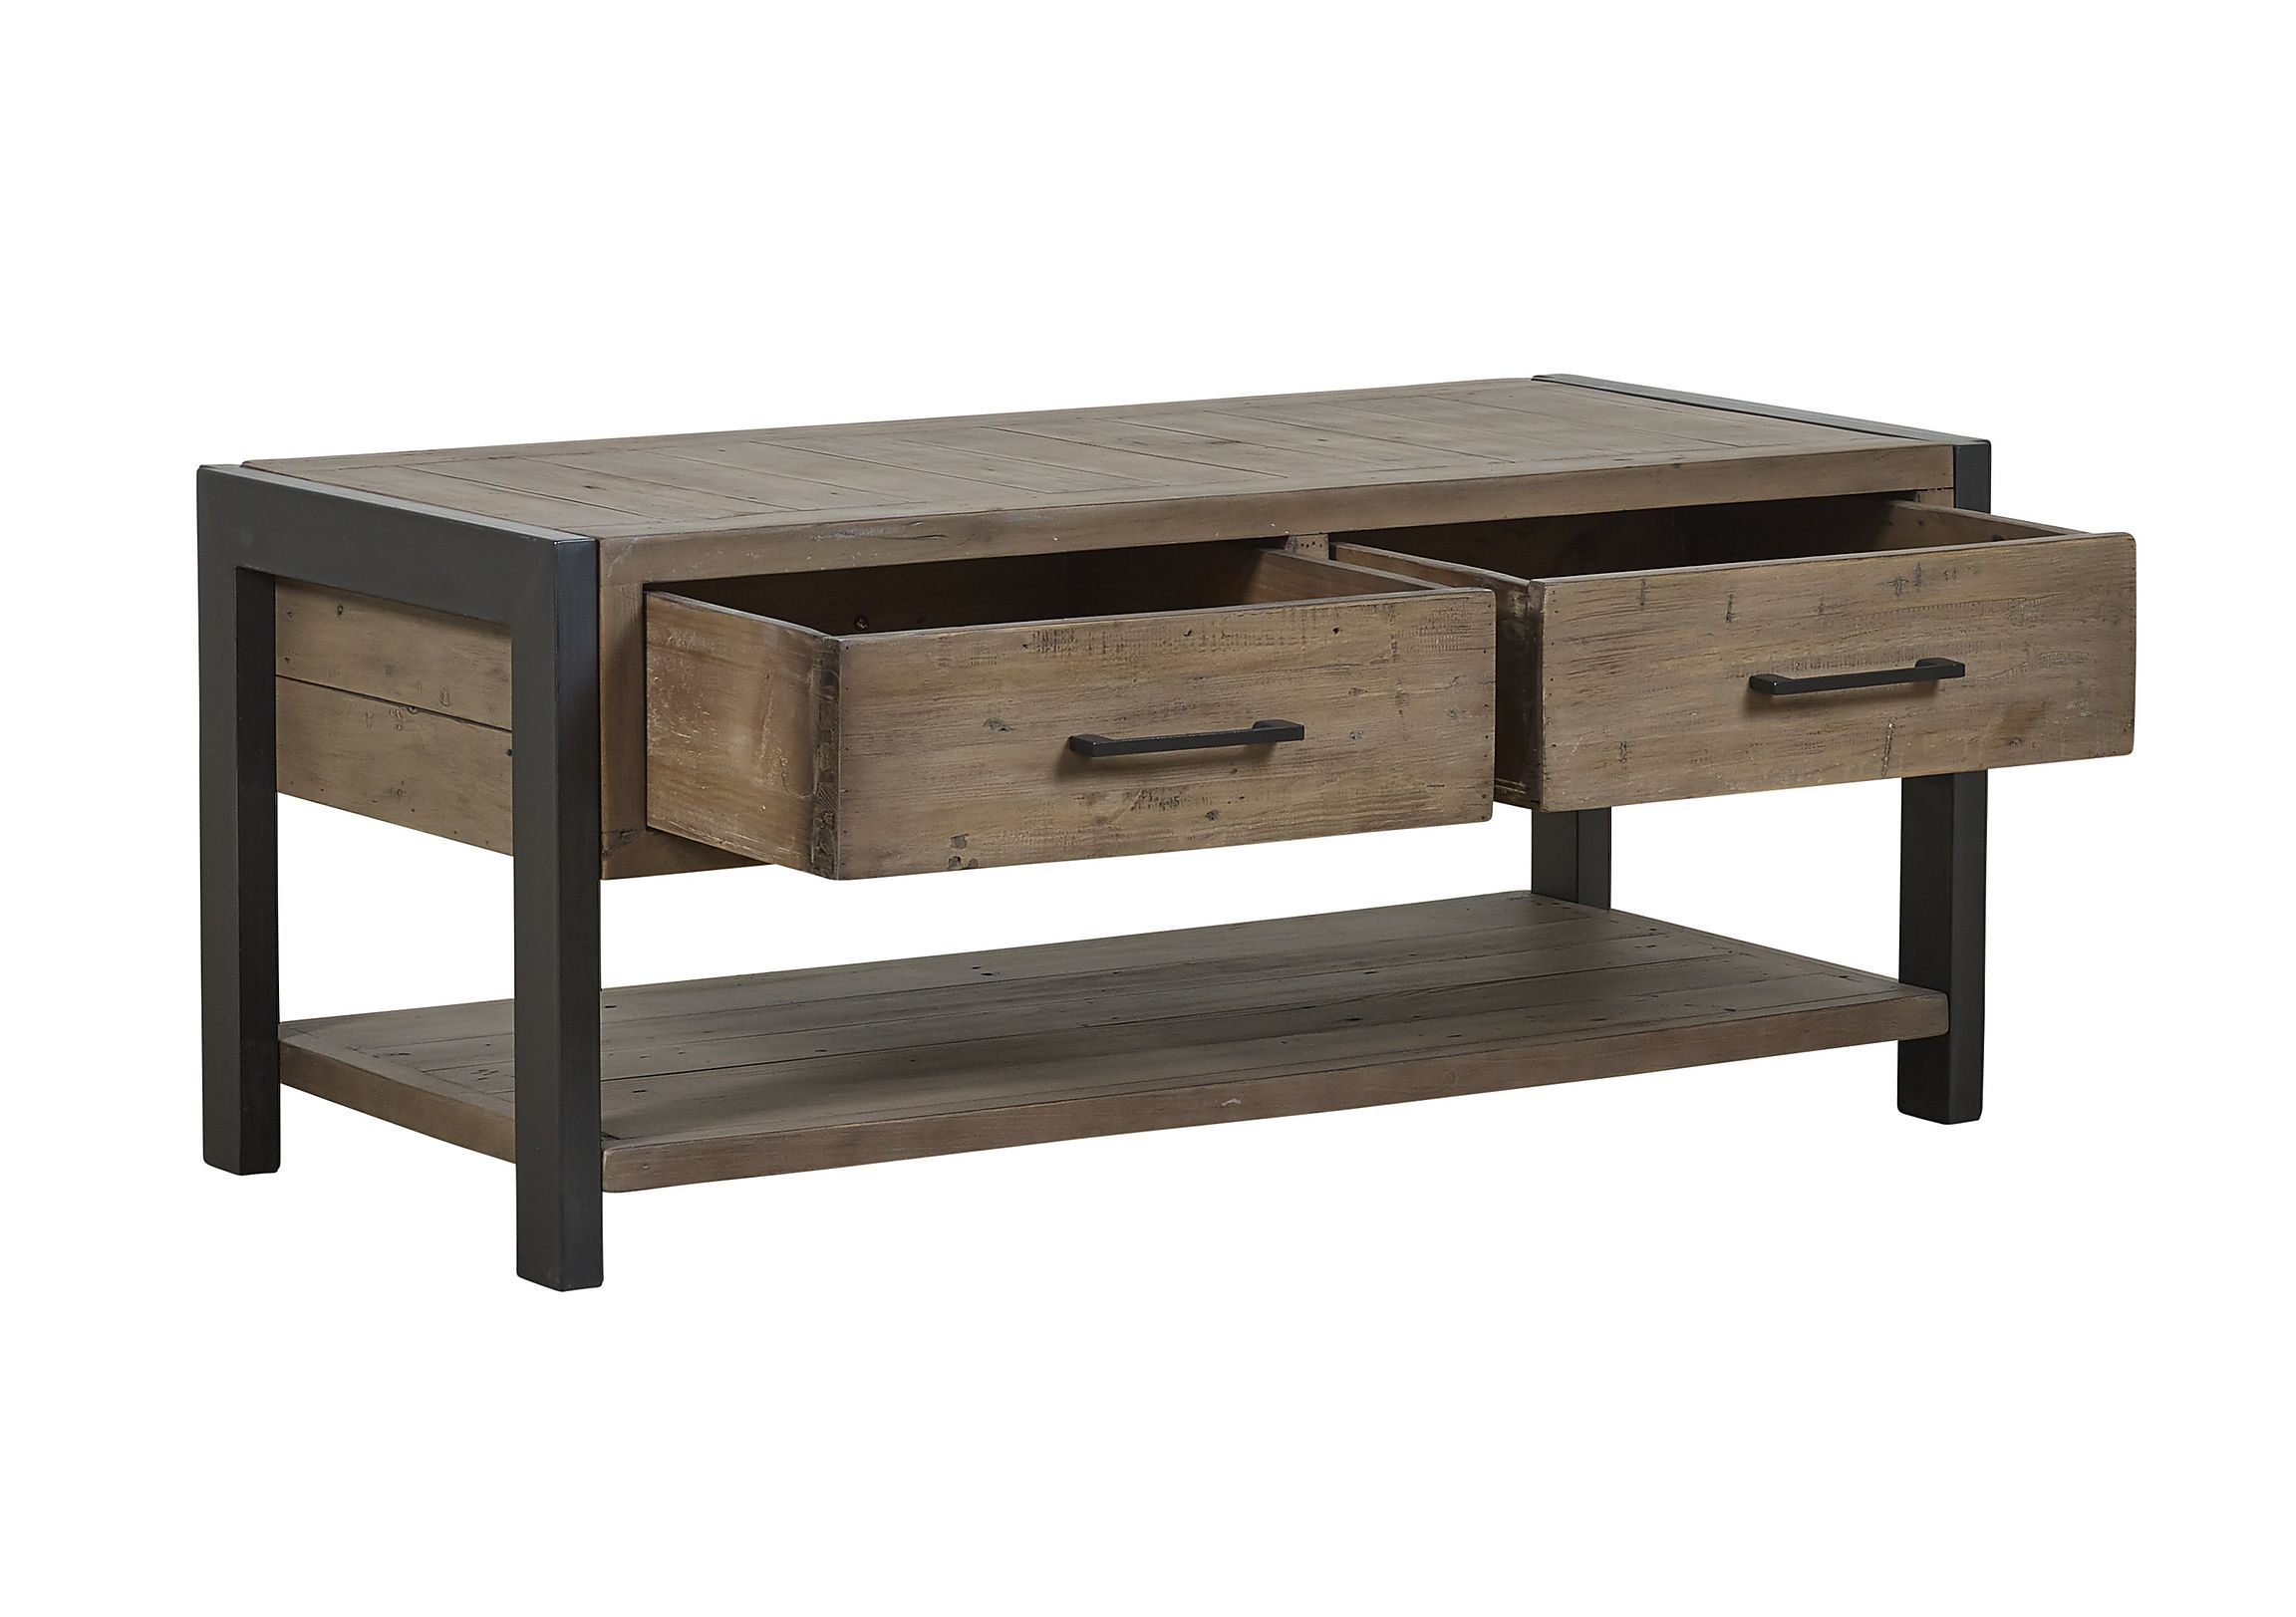 Shoreditch Coffee Table Hillcrest Coffee Table Furniture Furniture Village Table